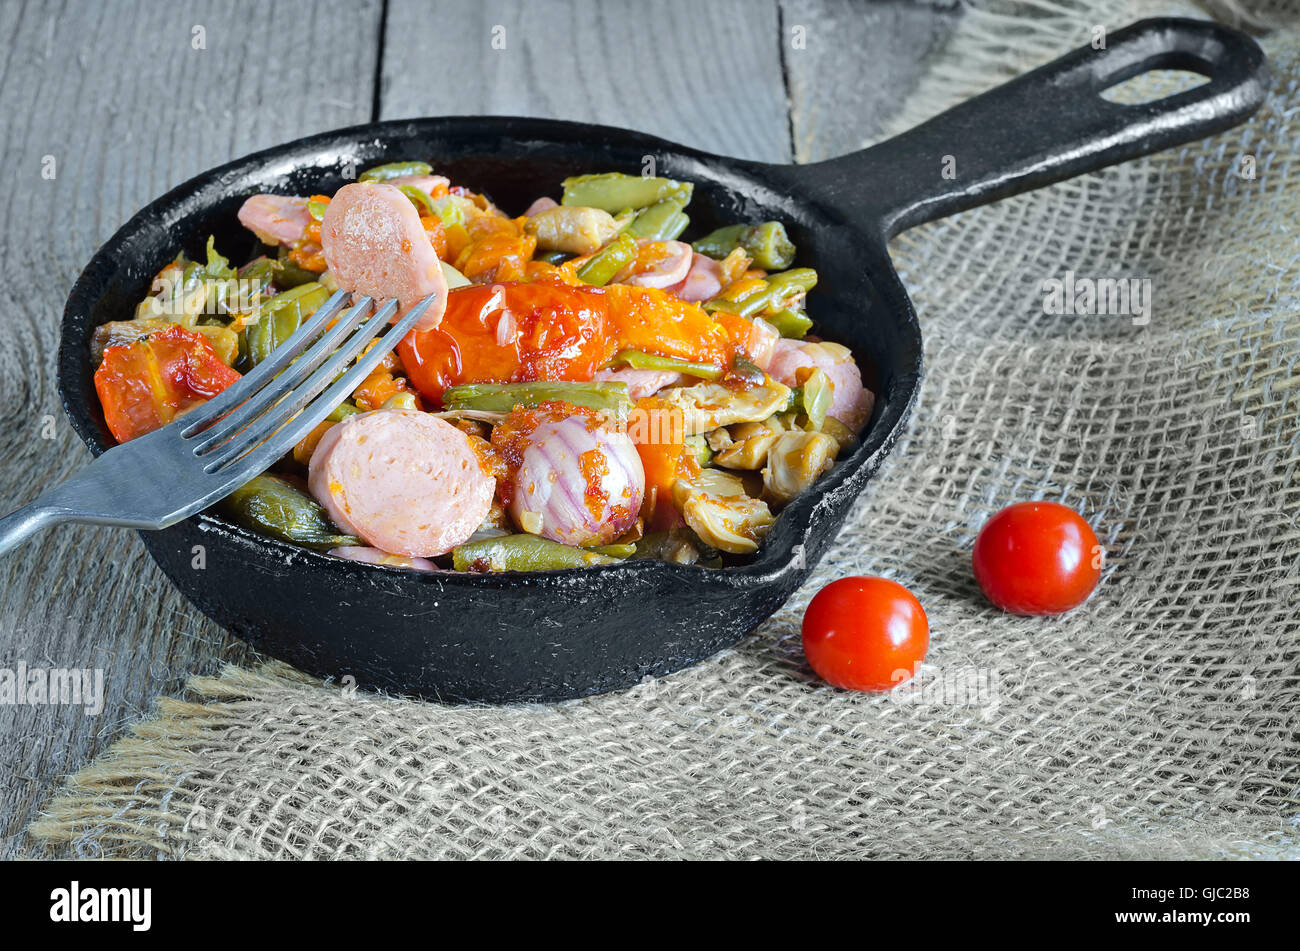 Roasted vegetables with sliced sausage. - Stock Image